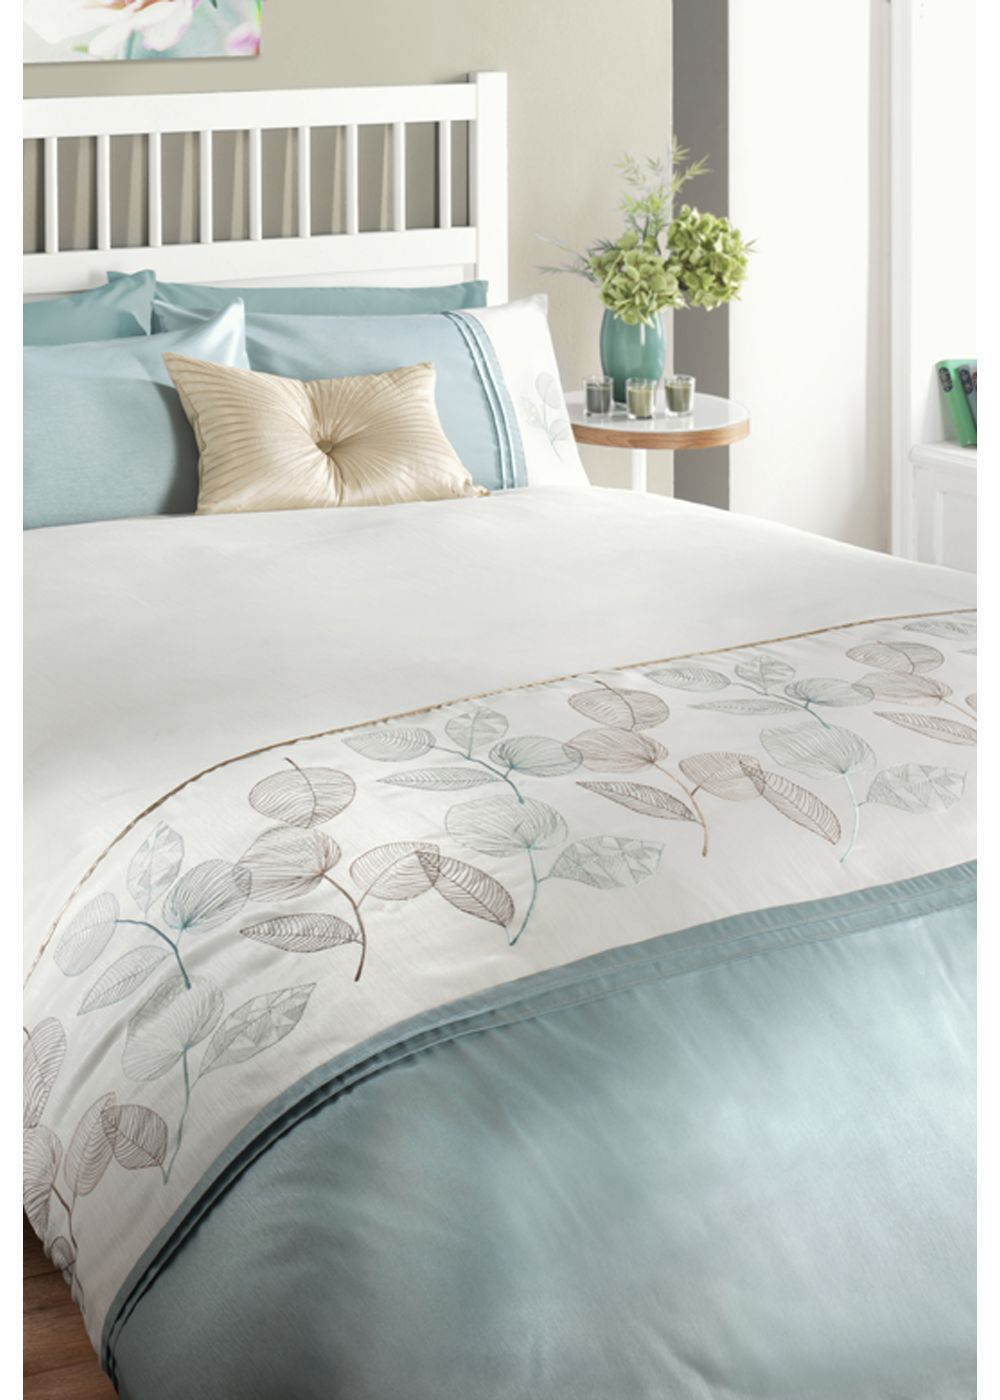 Inspire Me Luxury bedding sets, Cool beds, Home